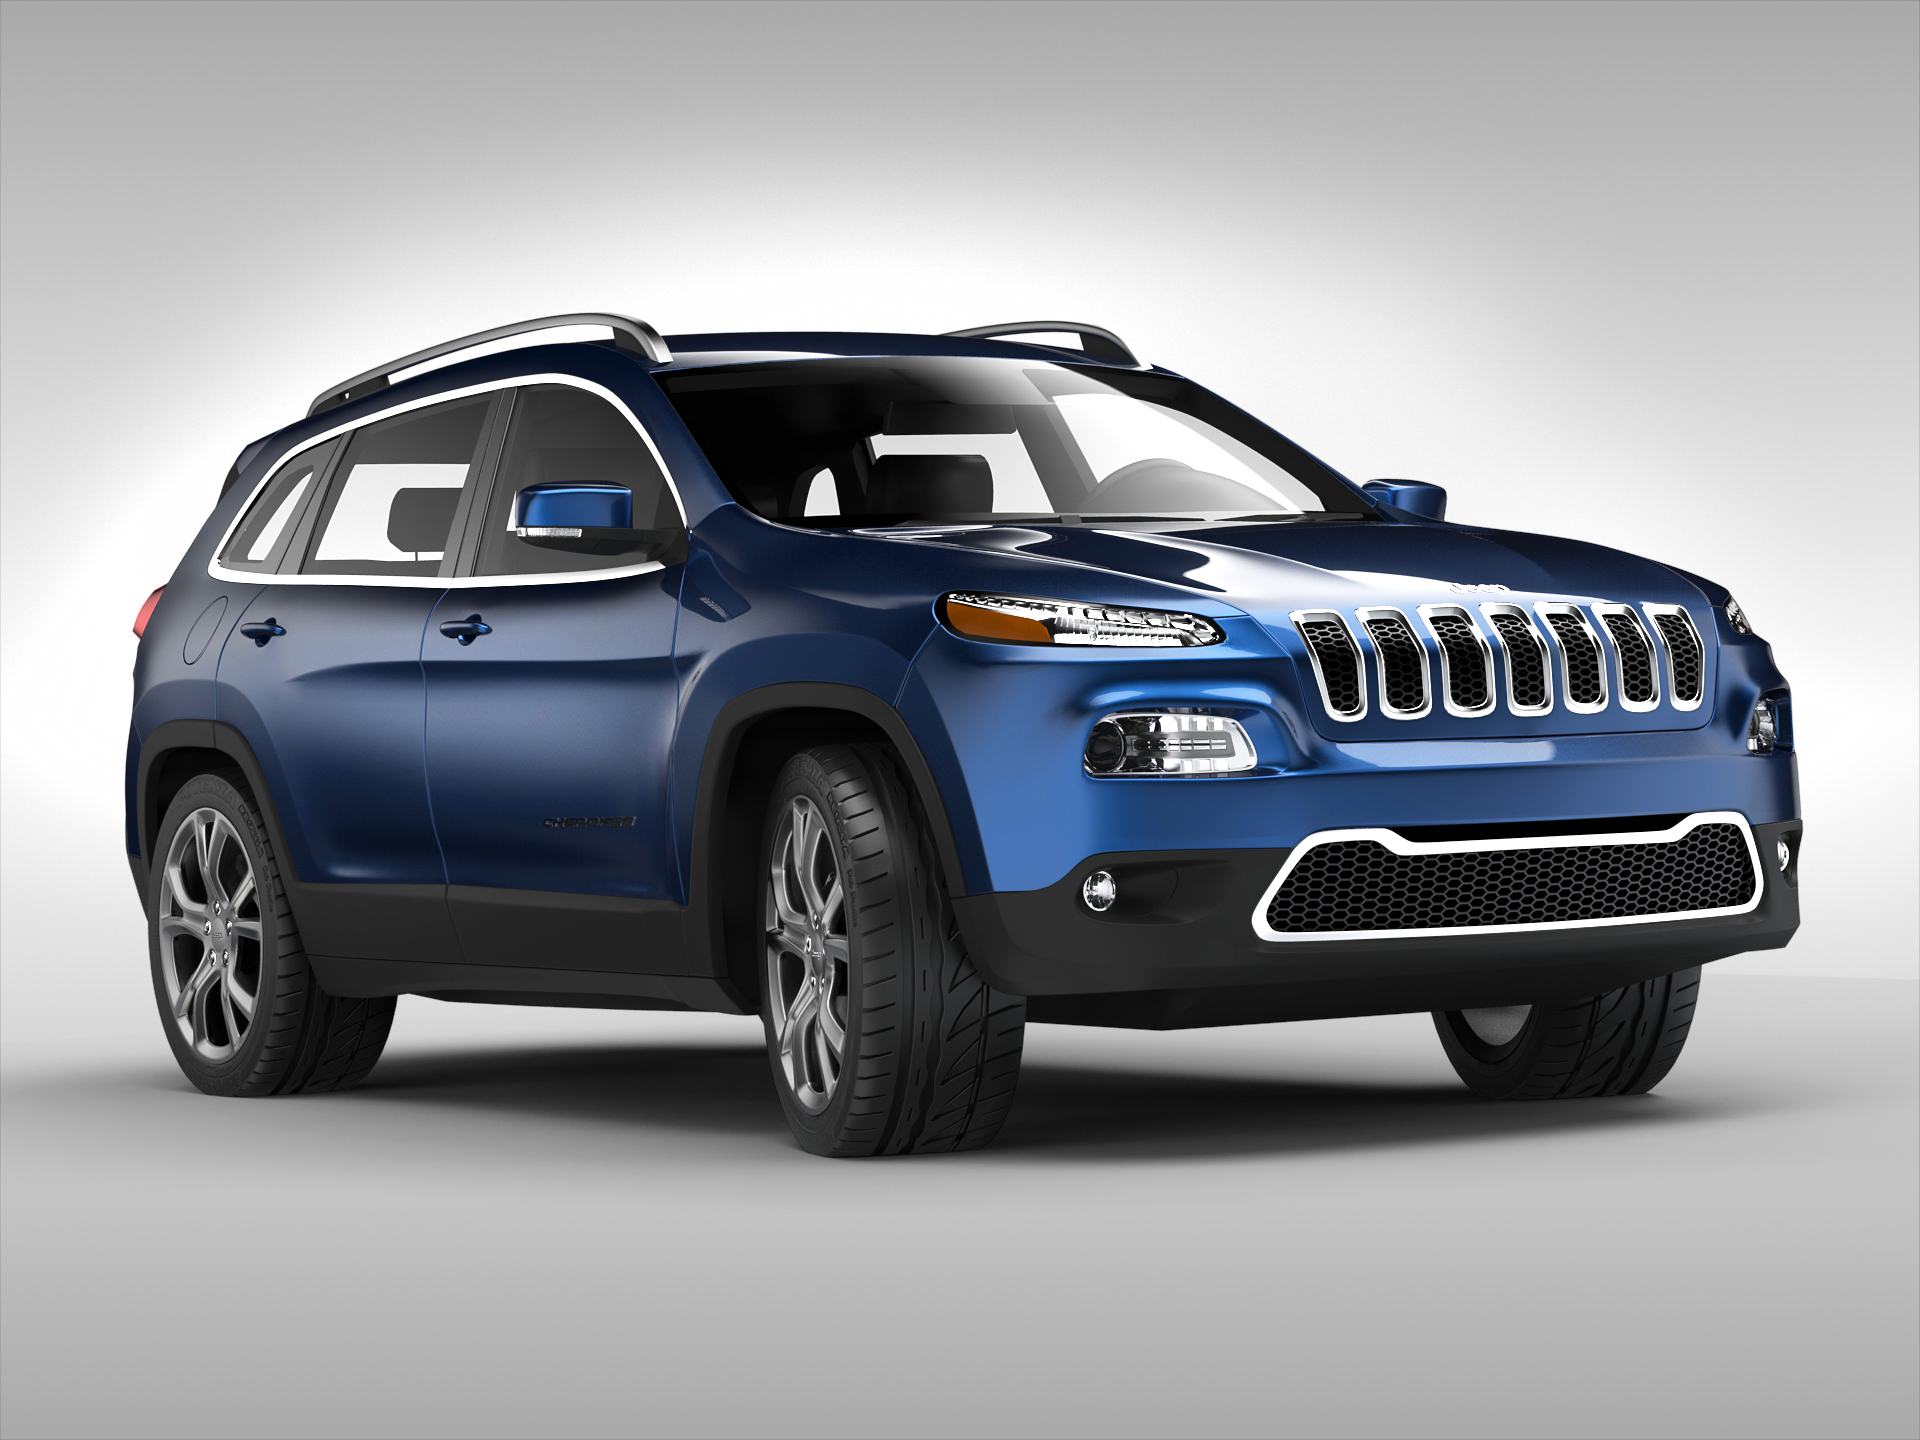 sales en sport sale jeep used auto cherokee inventory dartmouth in img vehicle for